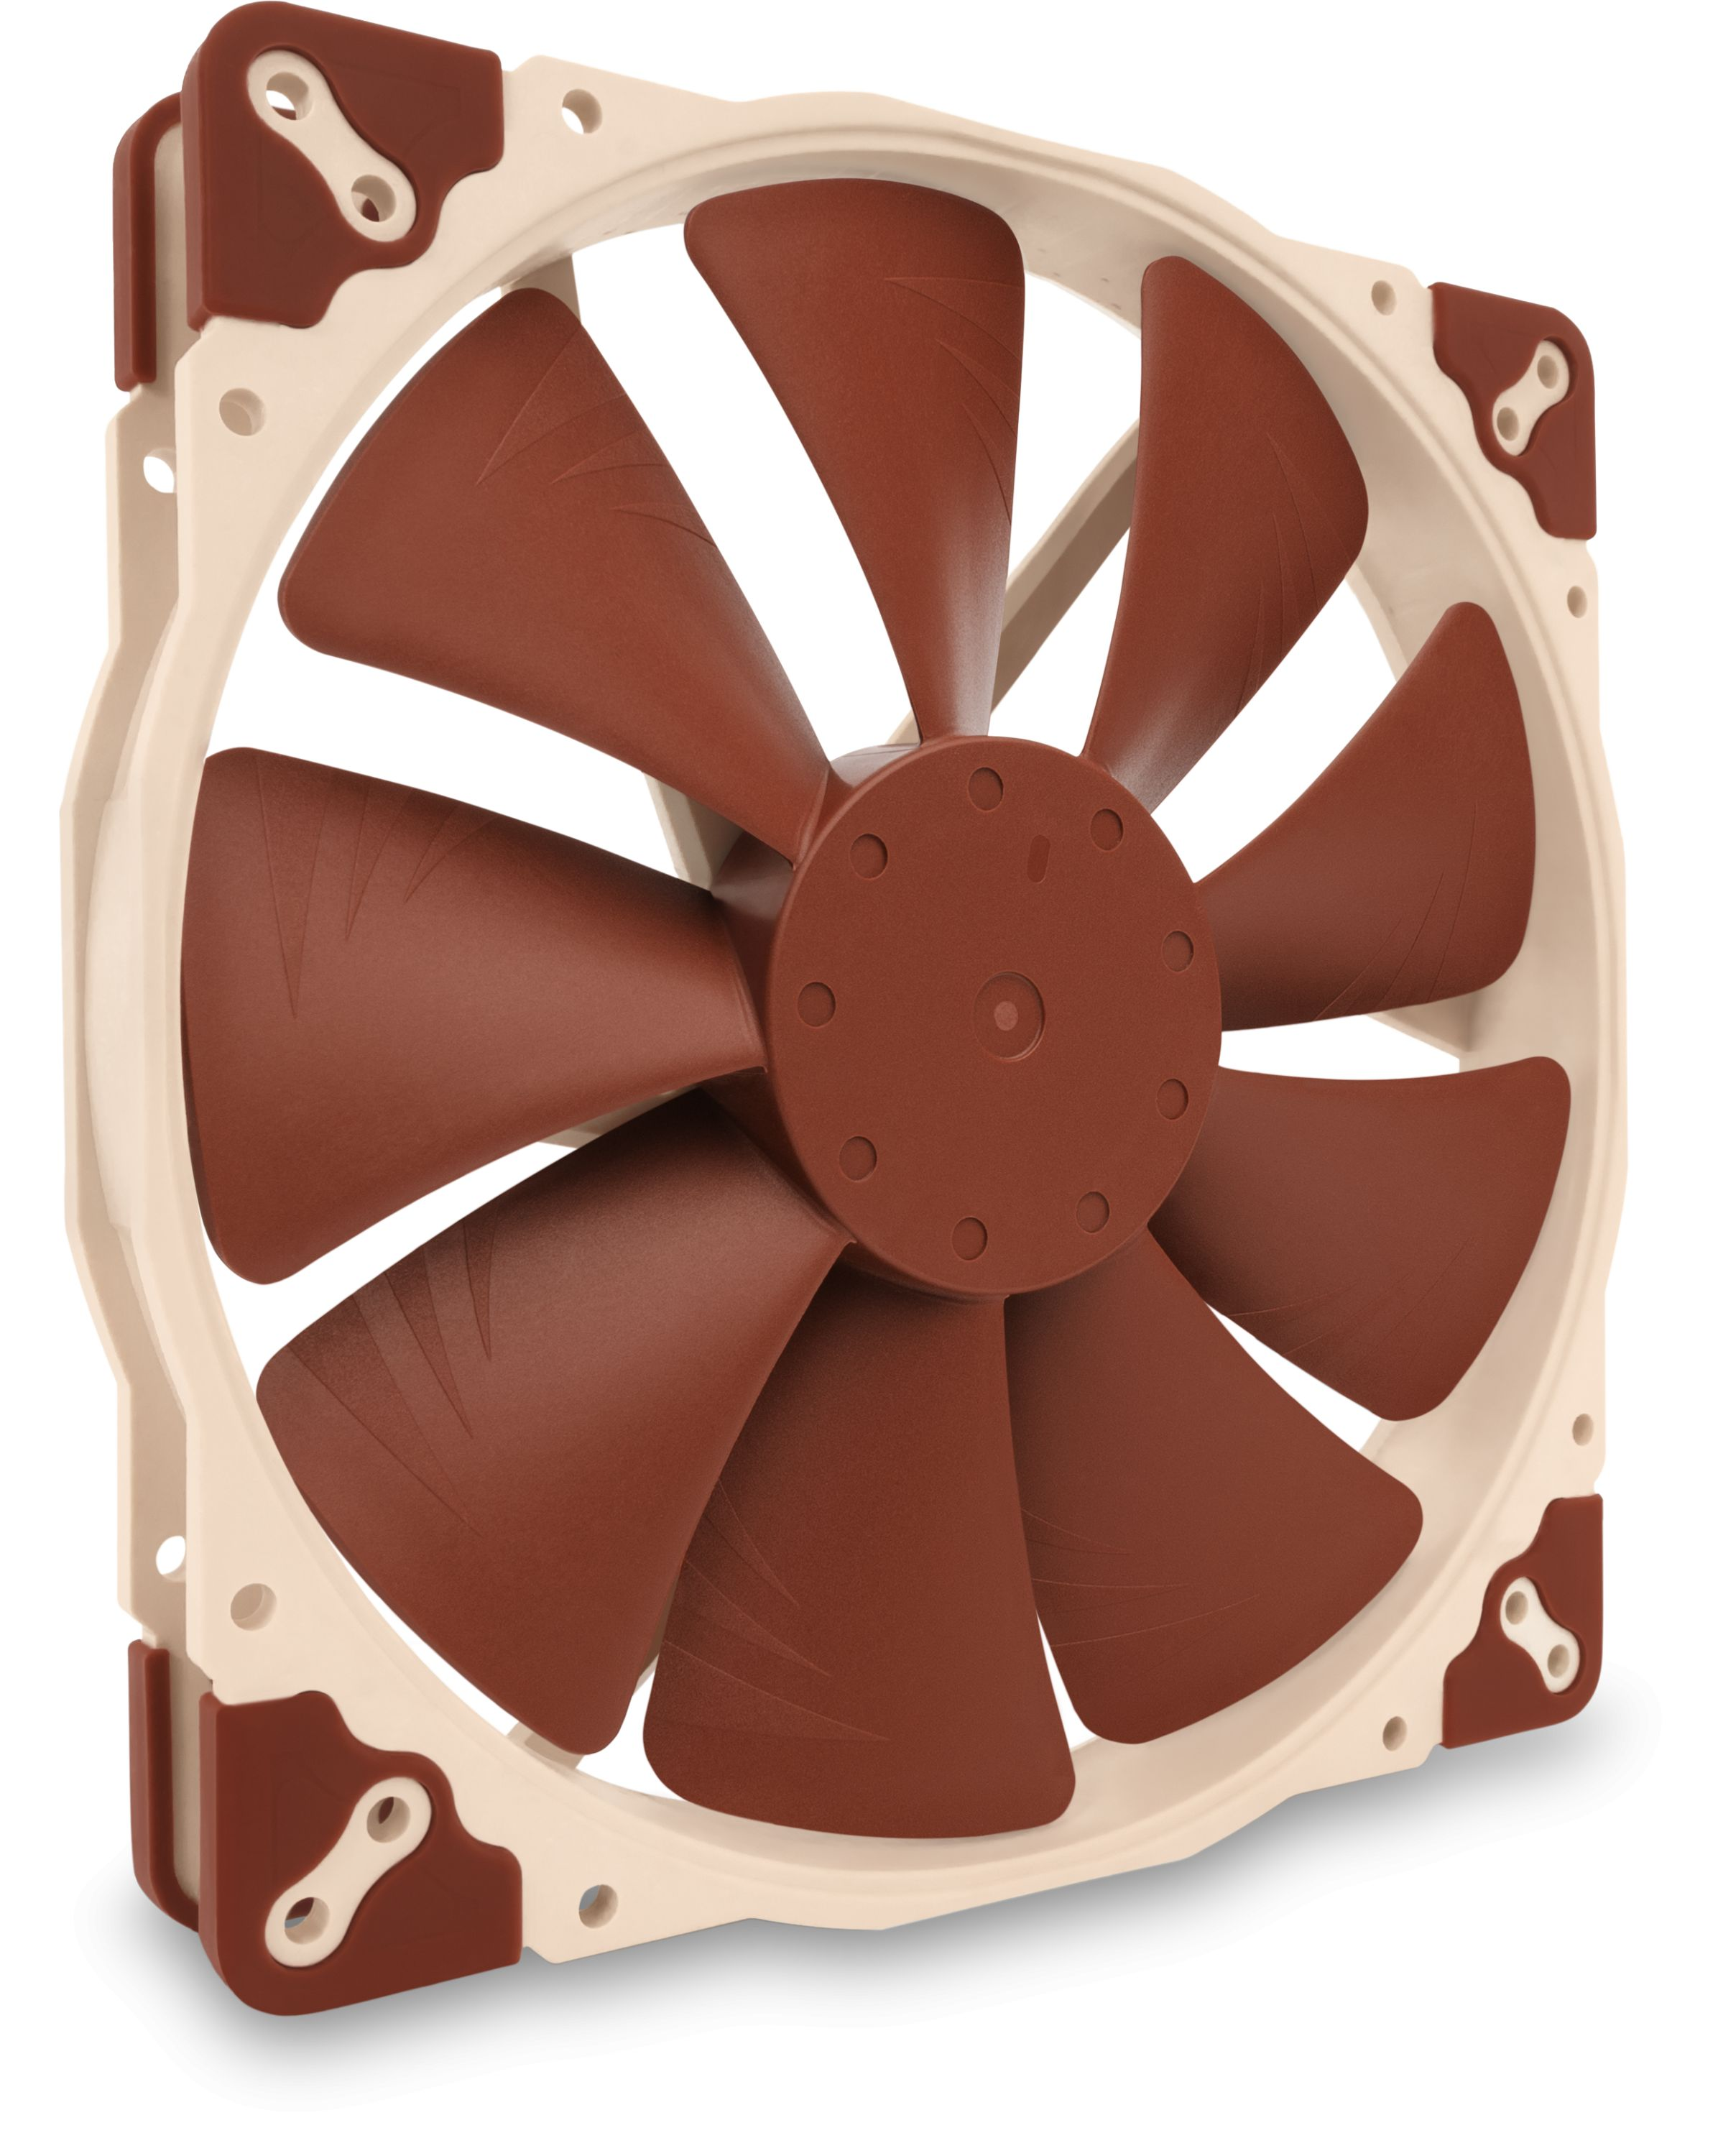 NF-A20 PWM 12V 800RPM 200x30mm Extra Large Quiet Fan